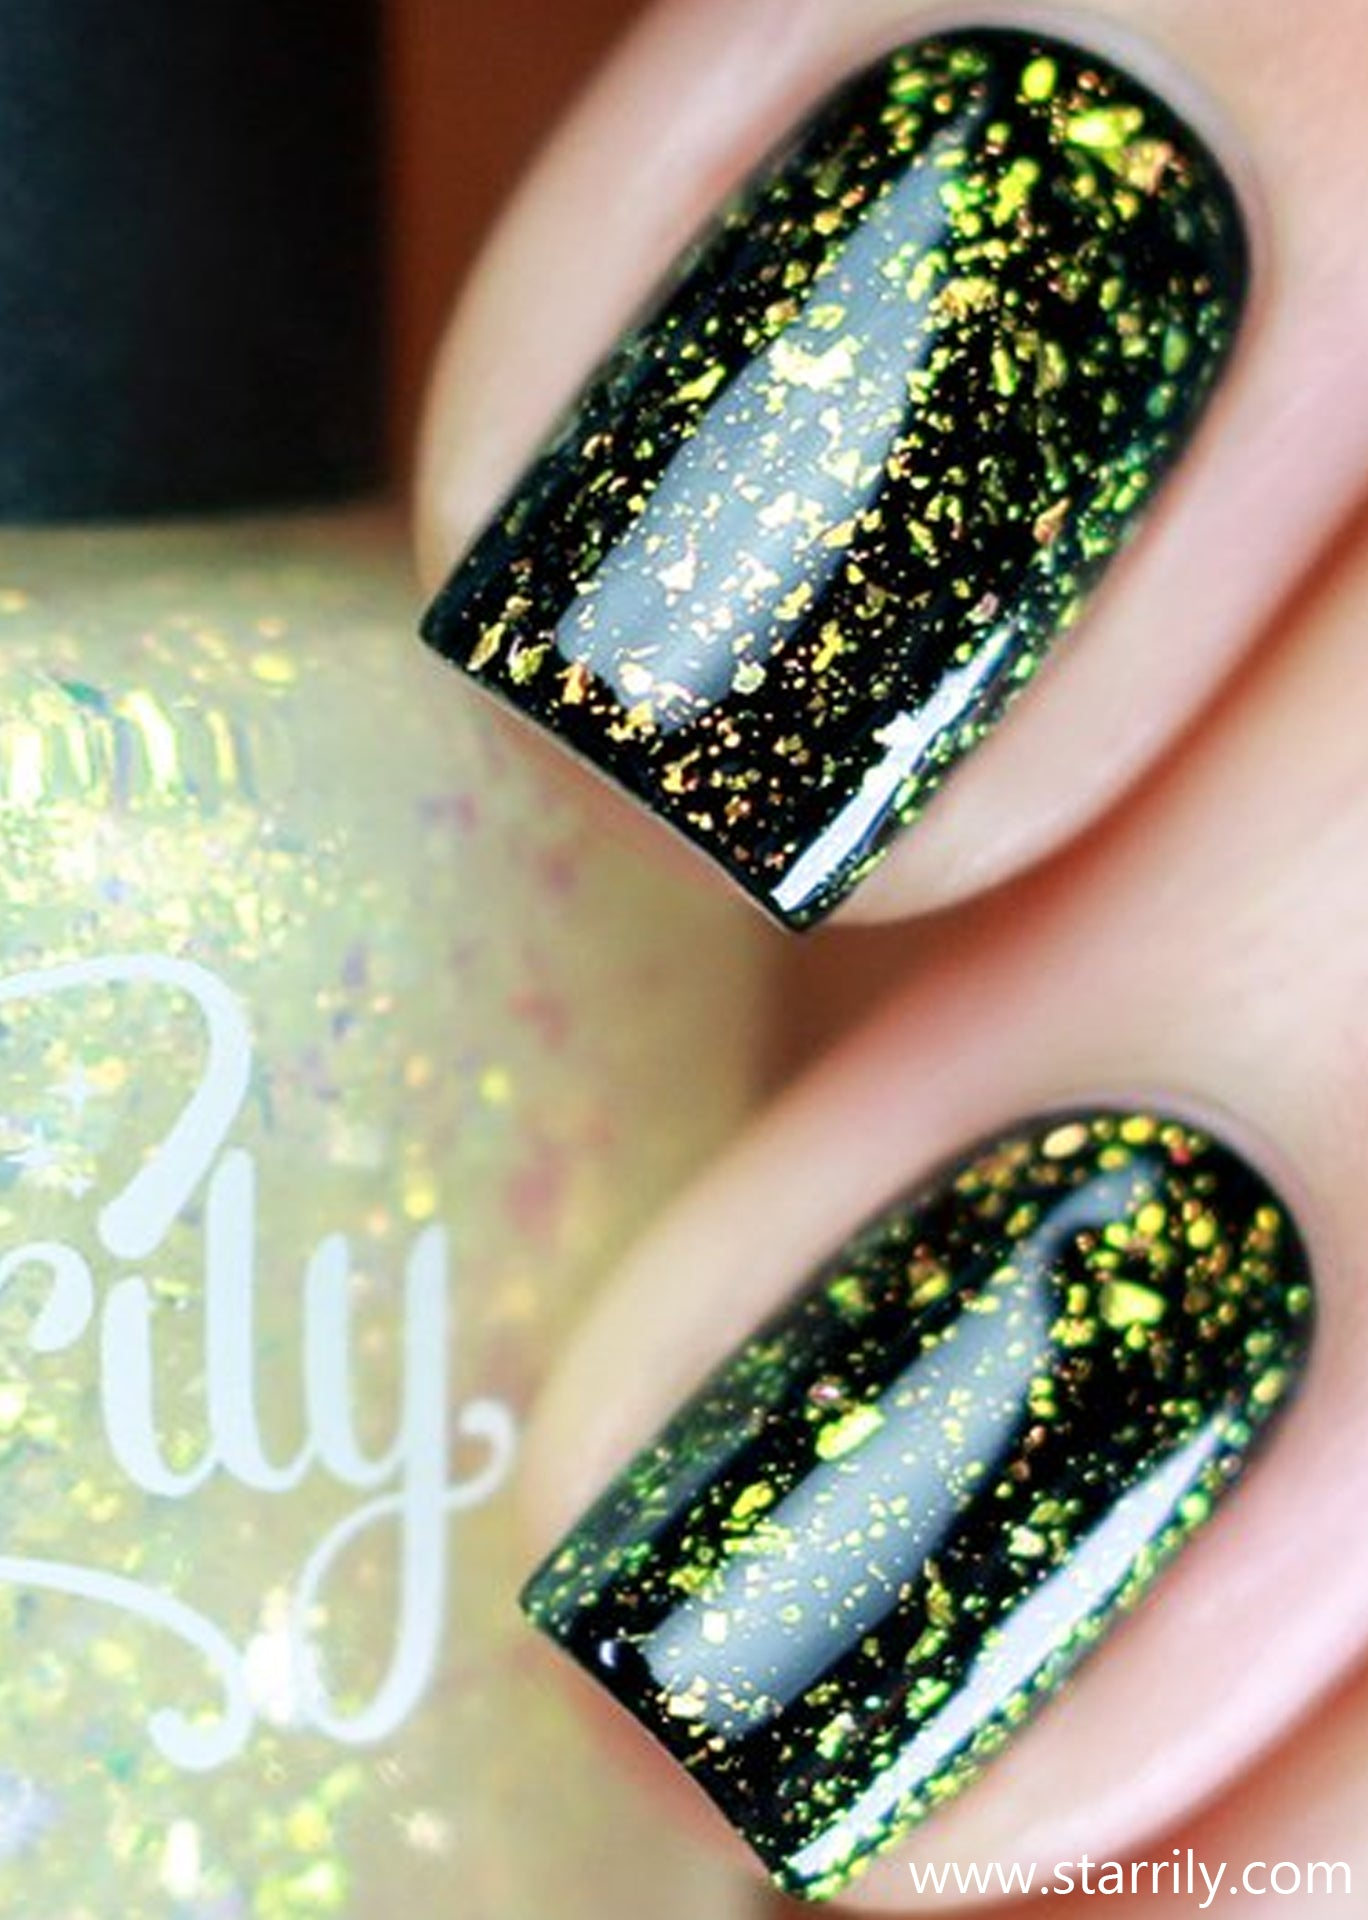 Lumos contains clear gold iridescent multichrome flakes